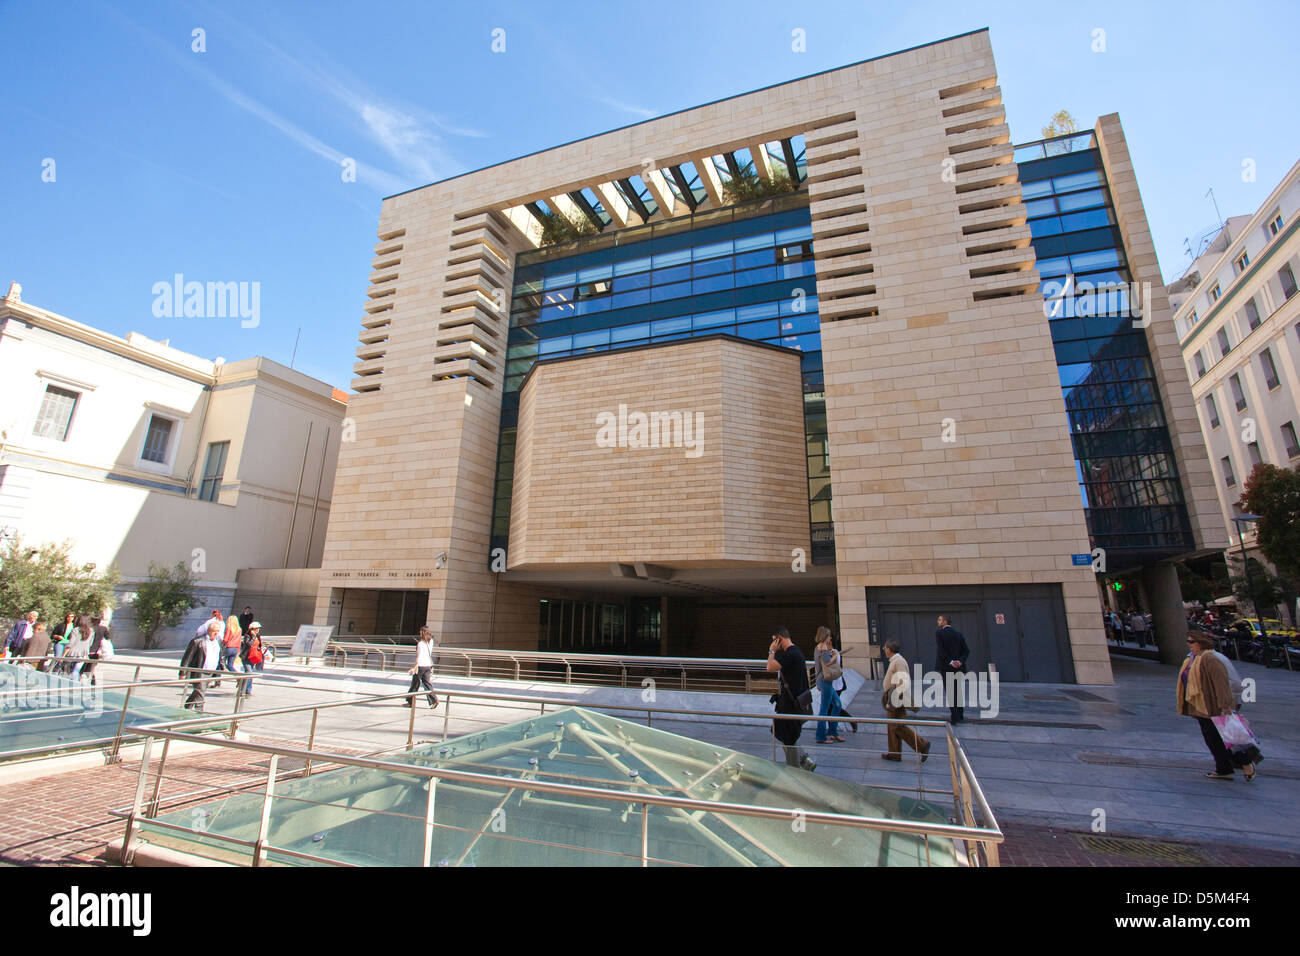 National Bank Of Greece, Athens, Greece - Stock Image